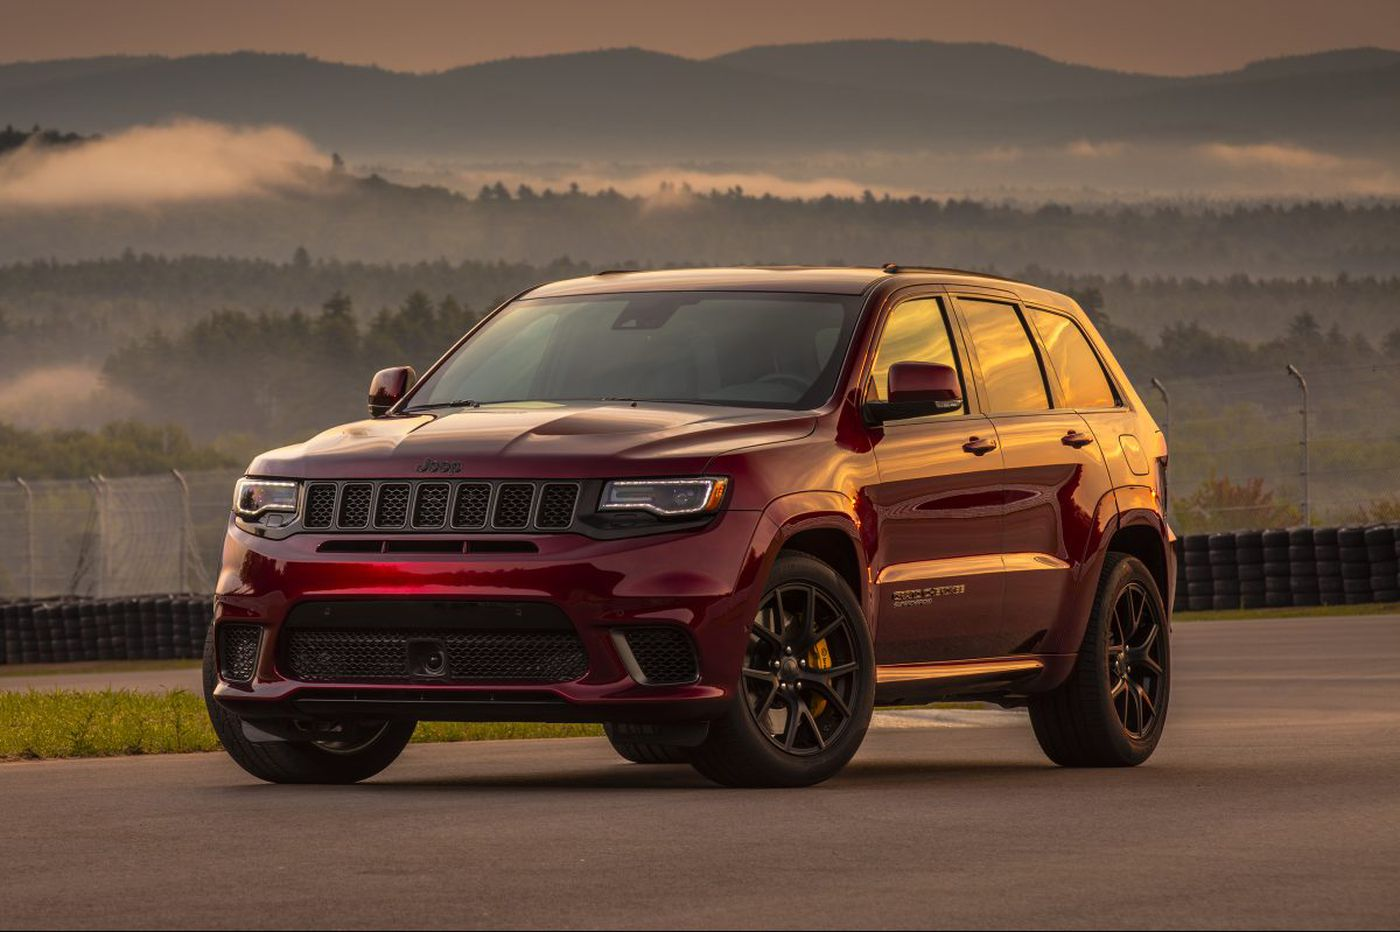 2018 Jeep Grand Cherokee Trackhawk: A supercharged pleasure to drive